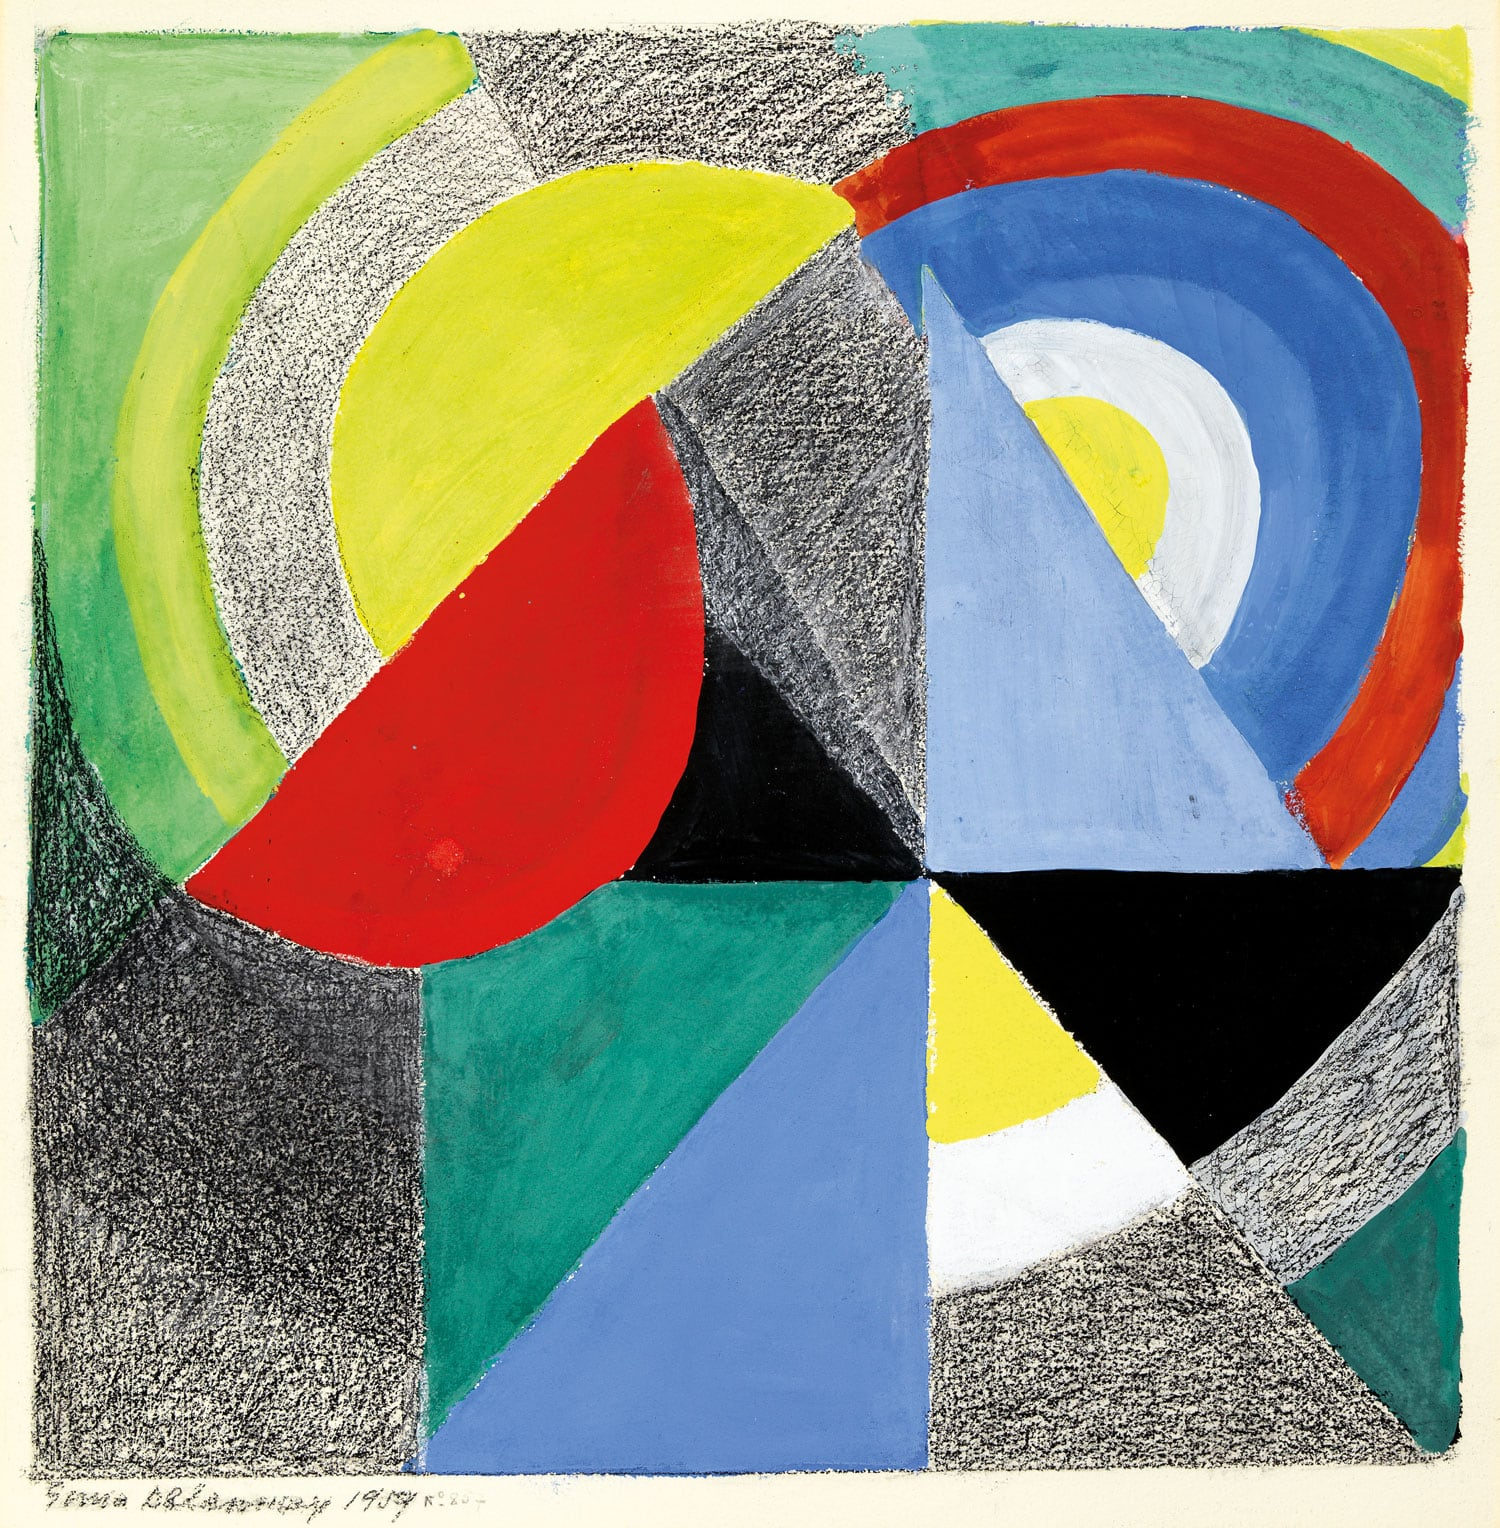 Sonia Delaunay (1884–1979), Rythme coloré, 1959. Estimate $50,000–70,000. This work is offered in the Impressionist & Modern Art Works on Paper sale on 14 May at Christie's in New York.